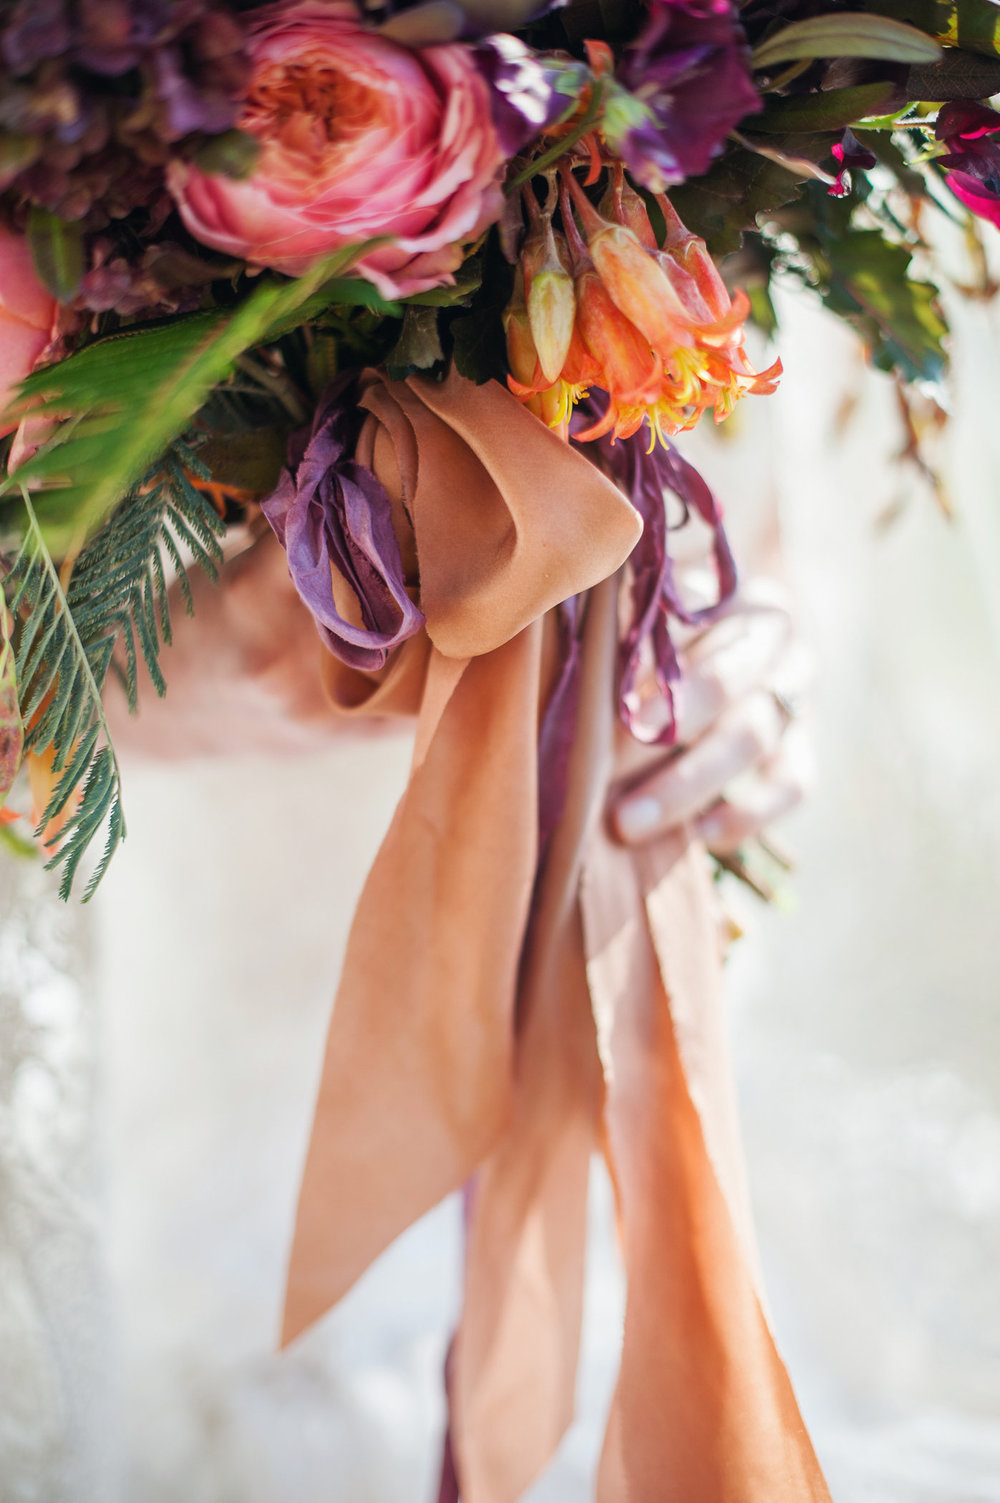 Carol Hannah Bridal Tritea, Kensington, Sequin Smoking Jacket Silver Linings Veil687.jpg